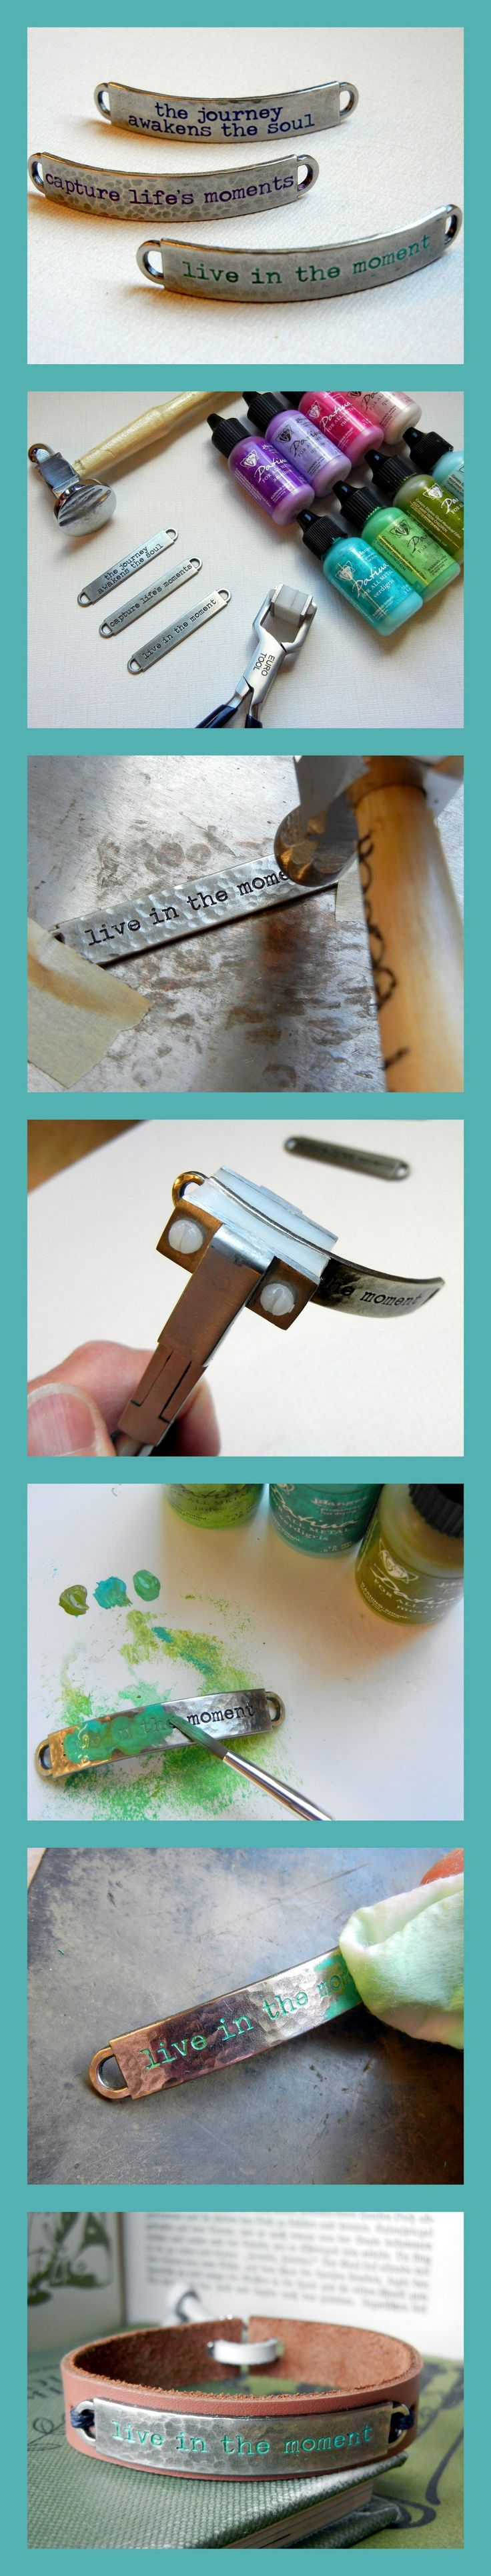 Add color to your jewelry with Vintaj Patinas.  A free DIY jewelry tutorial using Vintaj Patina from Rings & Things!